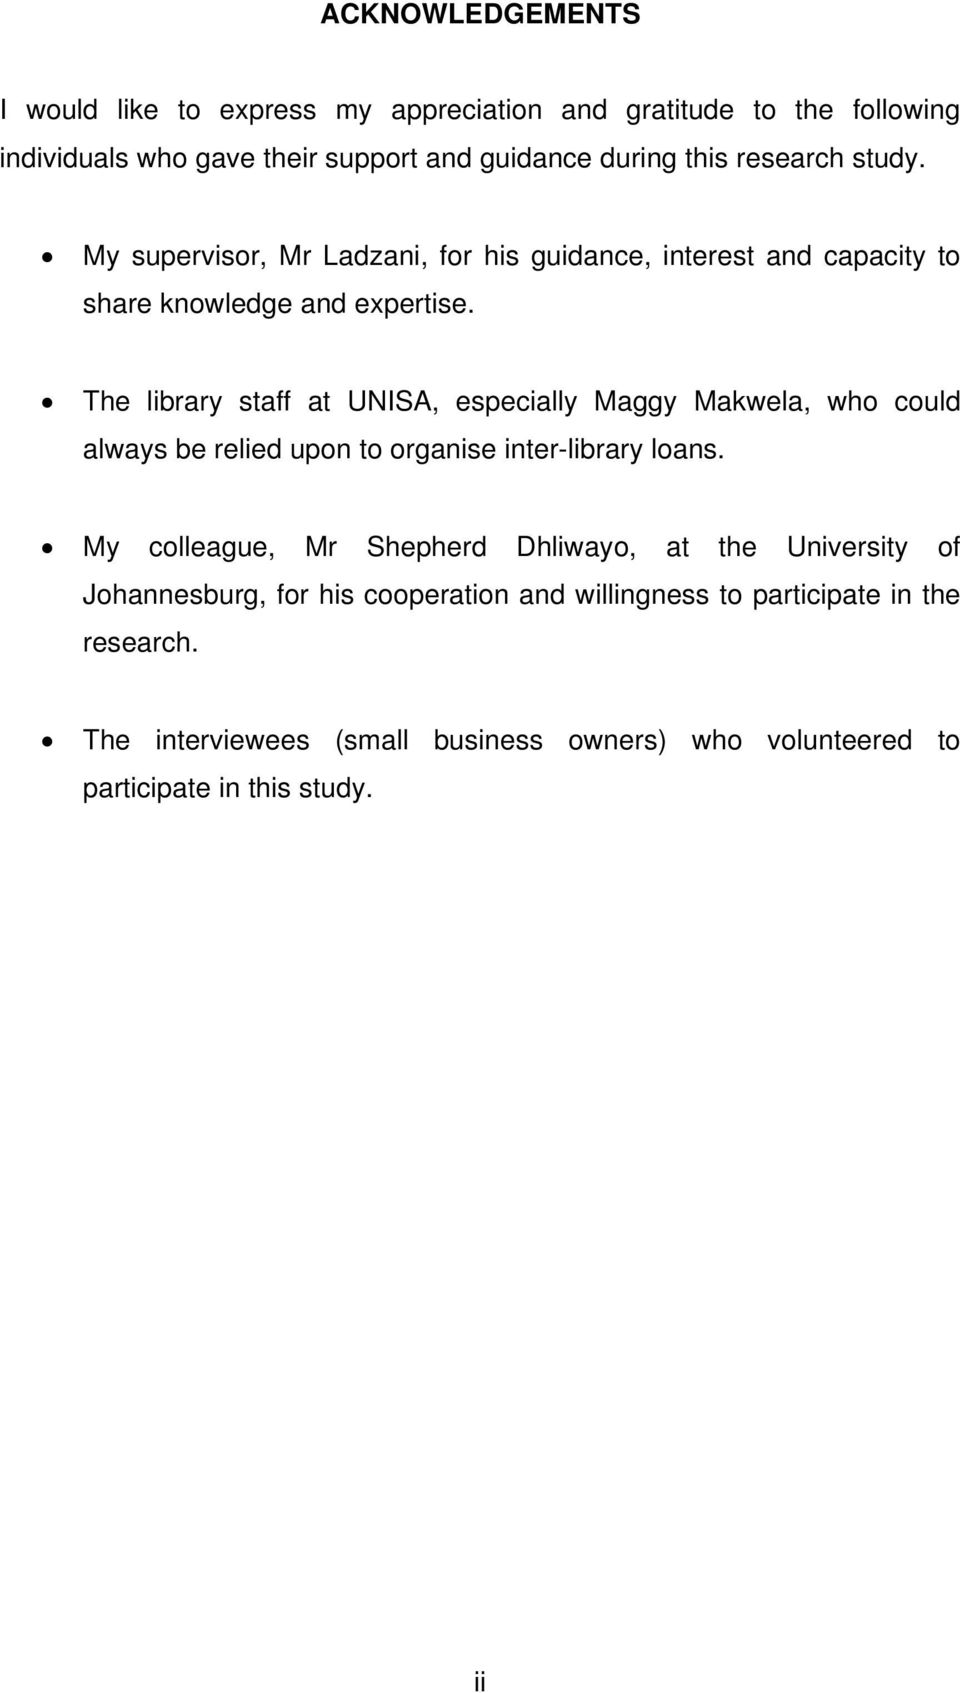 The library staff at UNISA, especially Maggy Makwela, who could always be relied upon to organise inter-library loans.